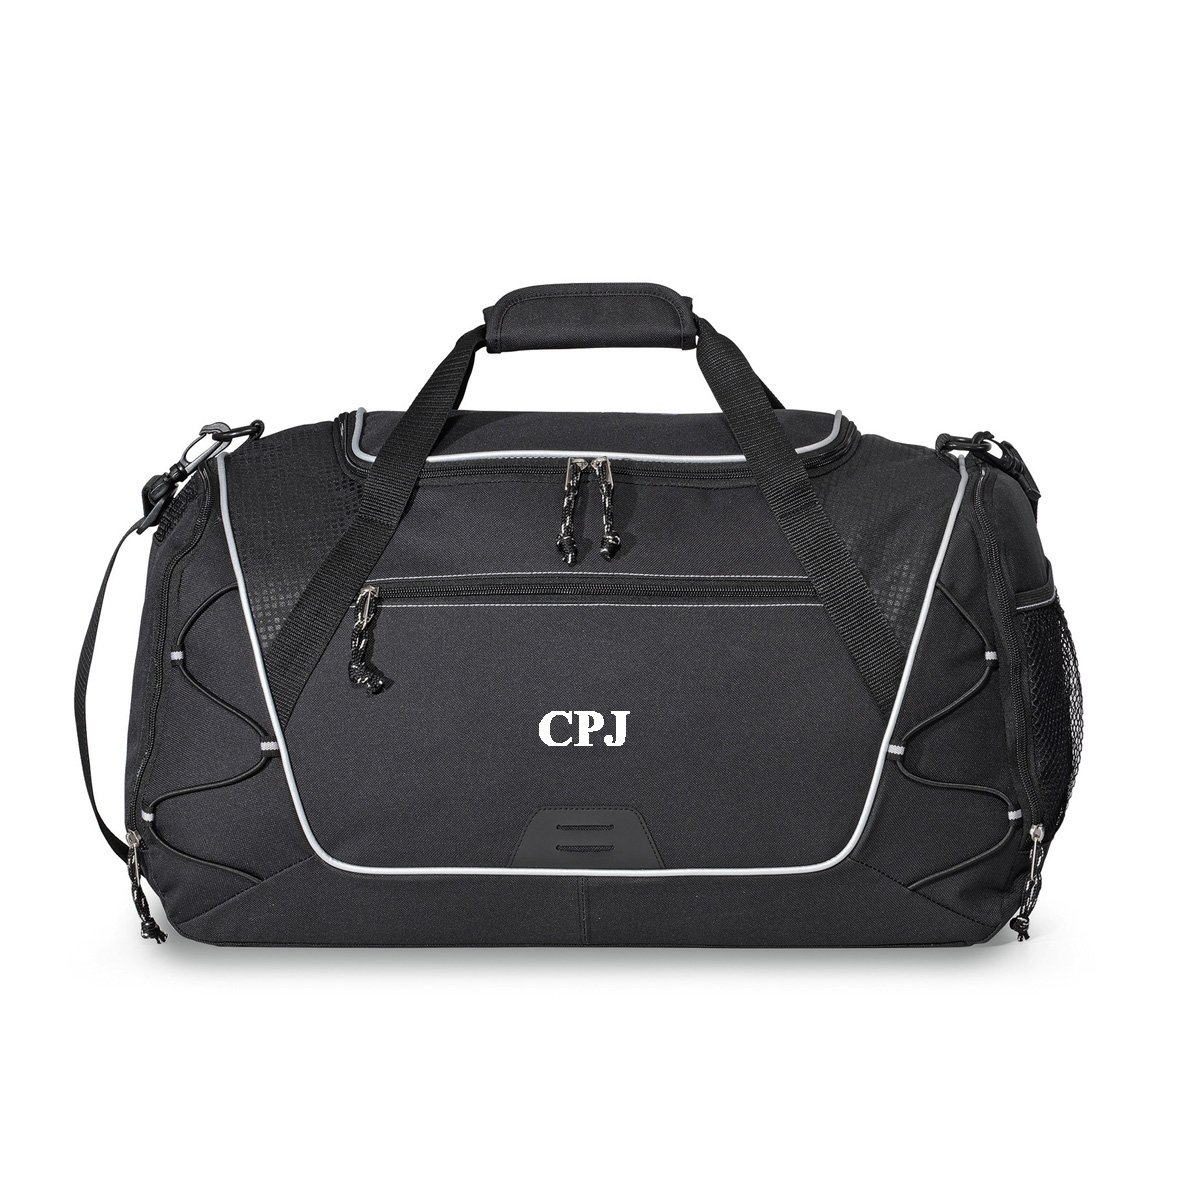 Camping Bags for Men Fitness Personalized Sports Duffel Bag Gym Travel Workout